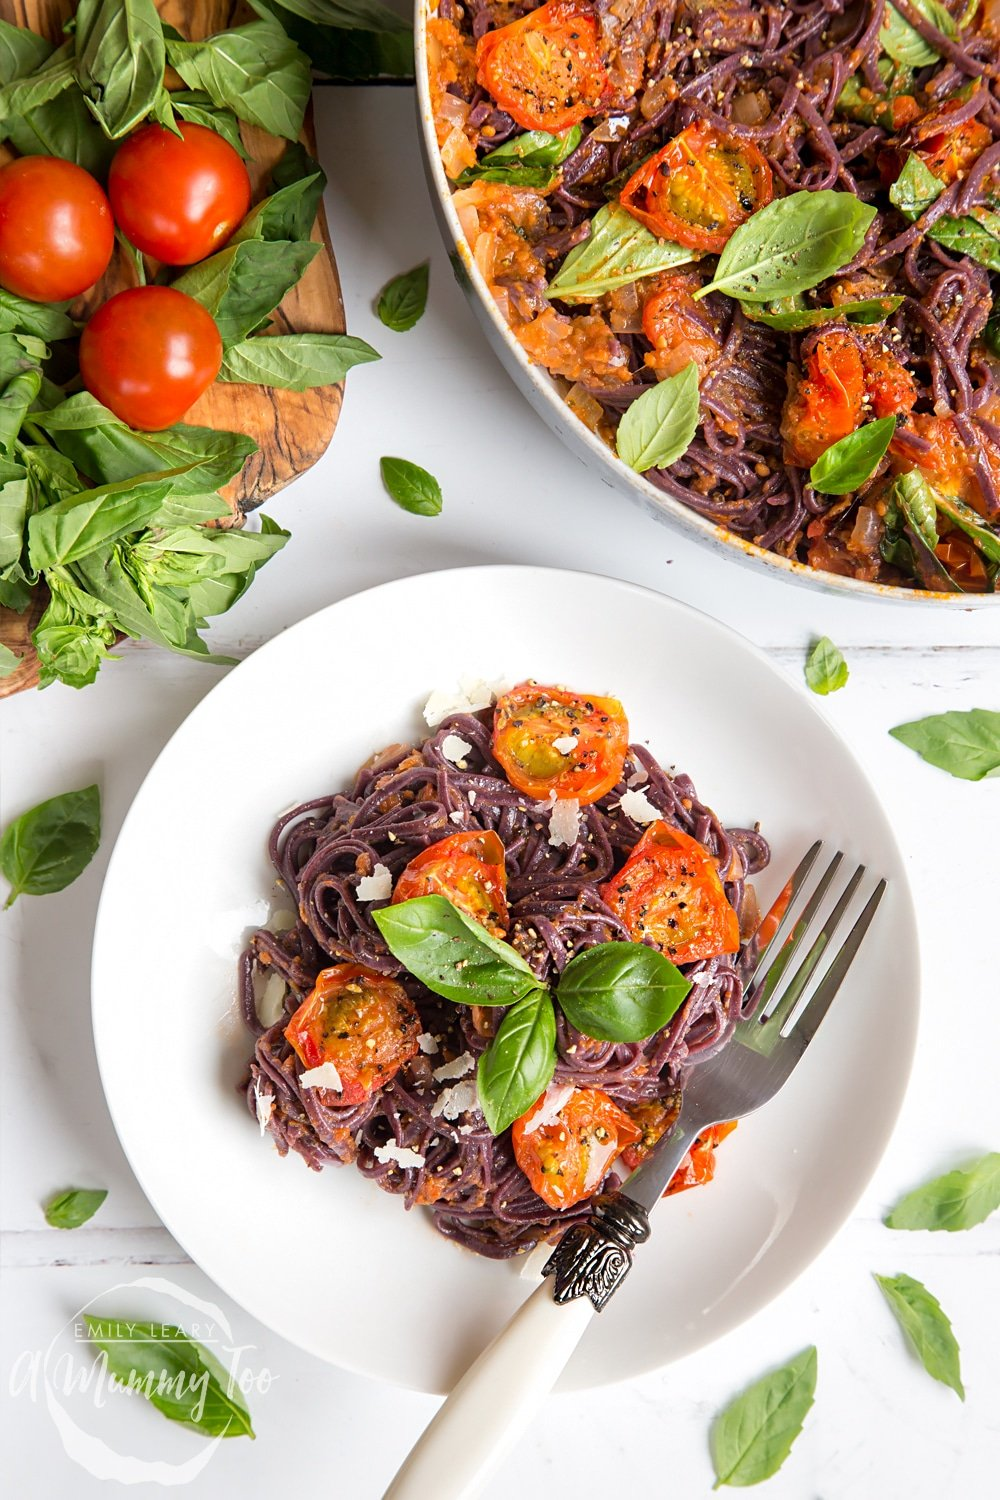 This black spaghetti with roasted tomatoes is full of flavour, vegan and gluten free!